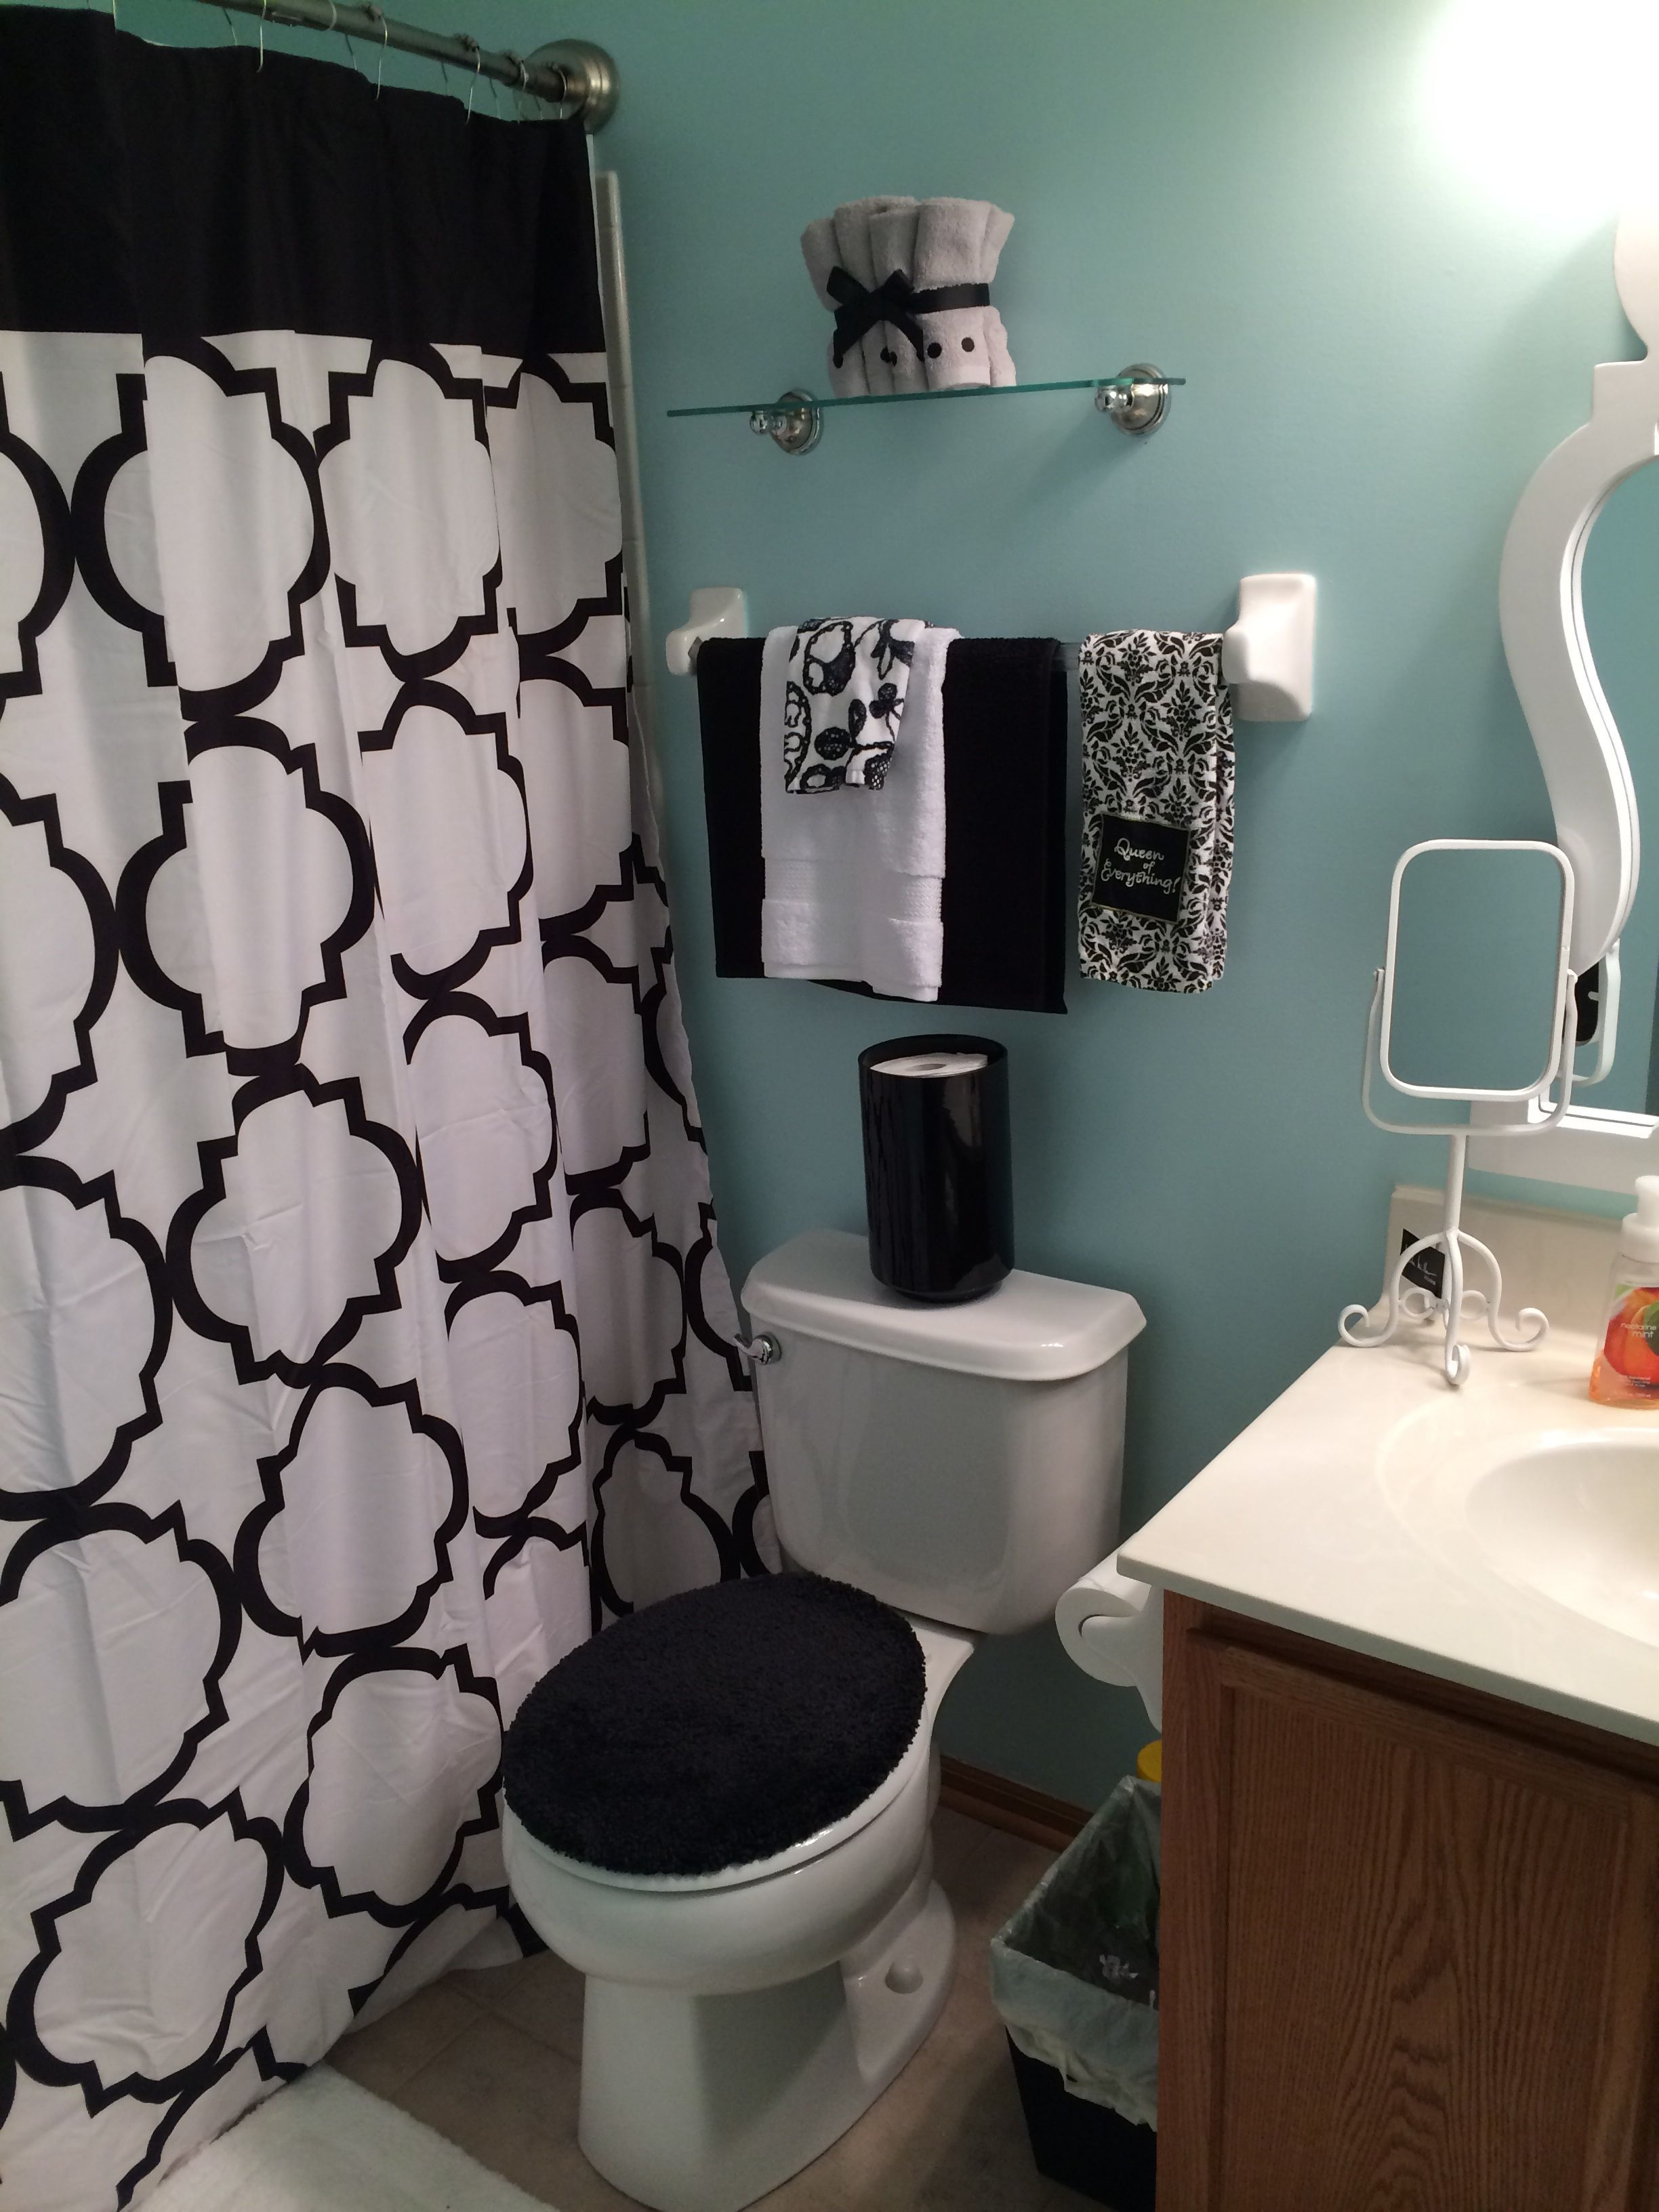 7 Dazzling Simple Ideas Bathroom Remodel Gray Double Sinks Laundr Small Apartment Restroom Decor